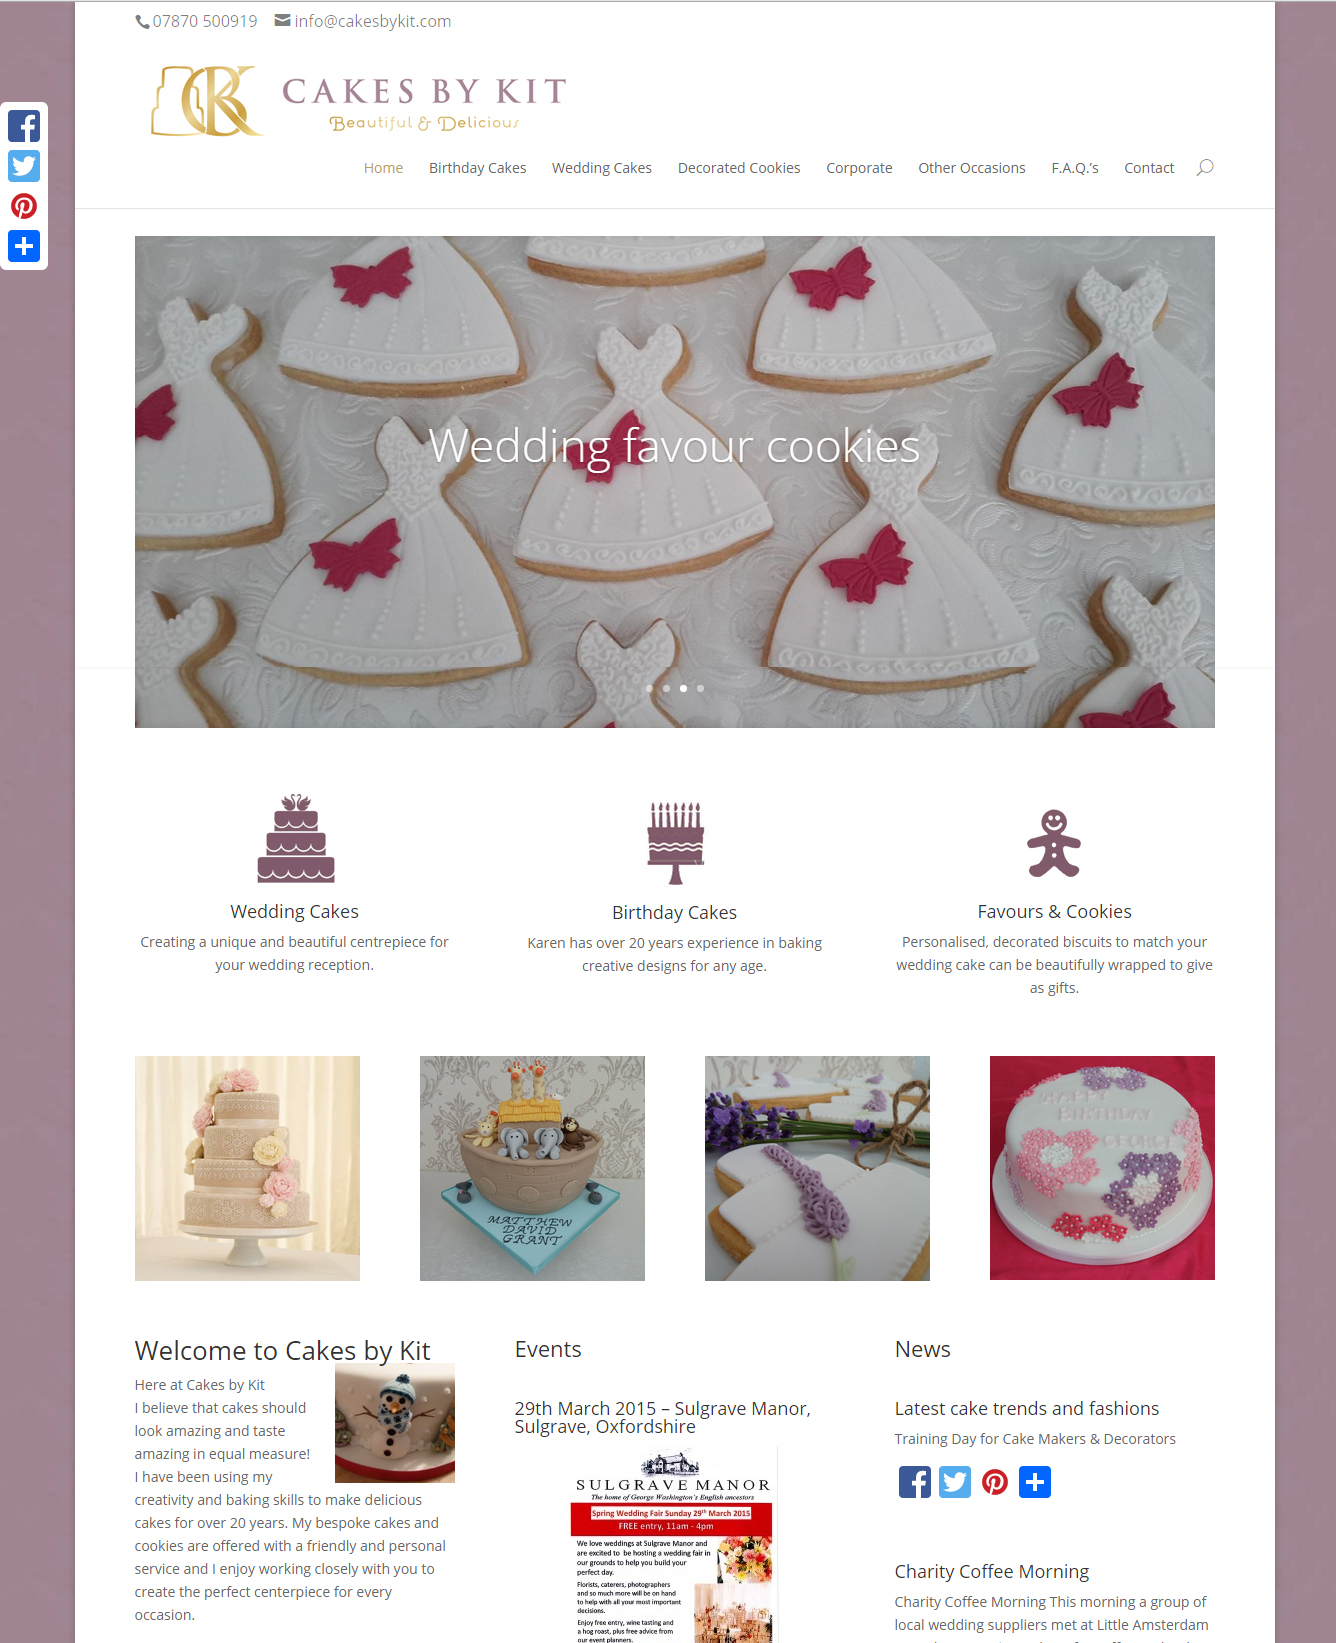 Cakes by Kit website